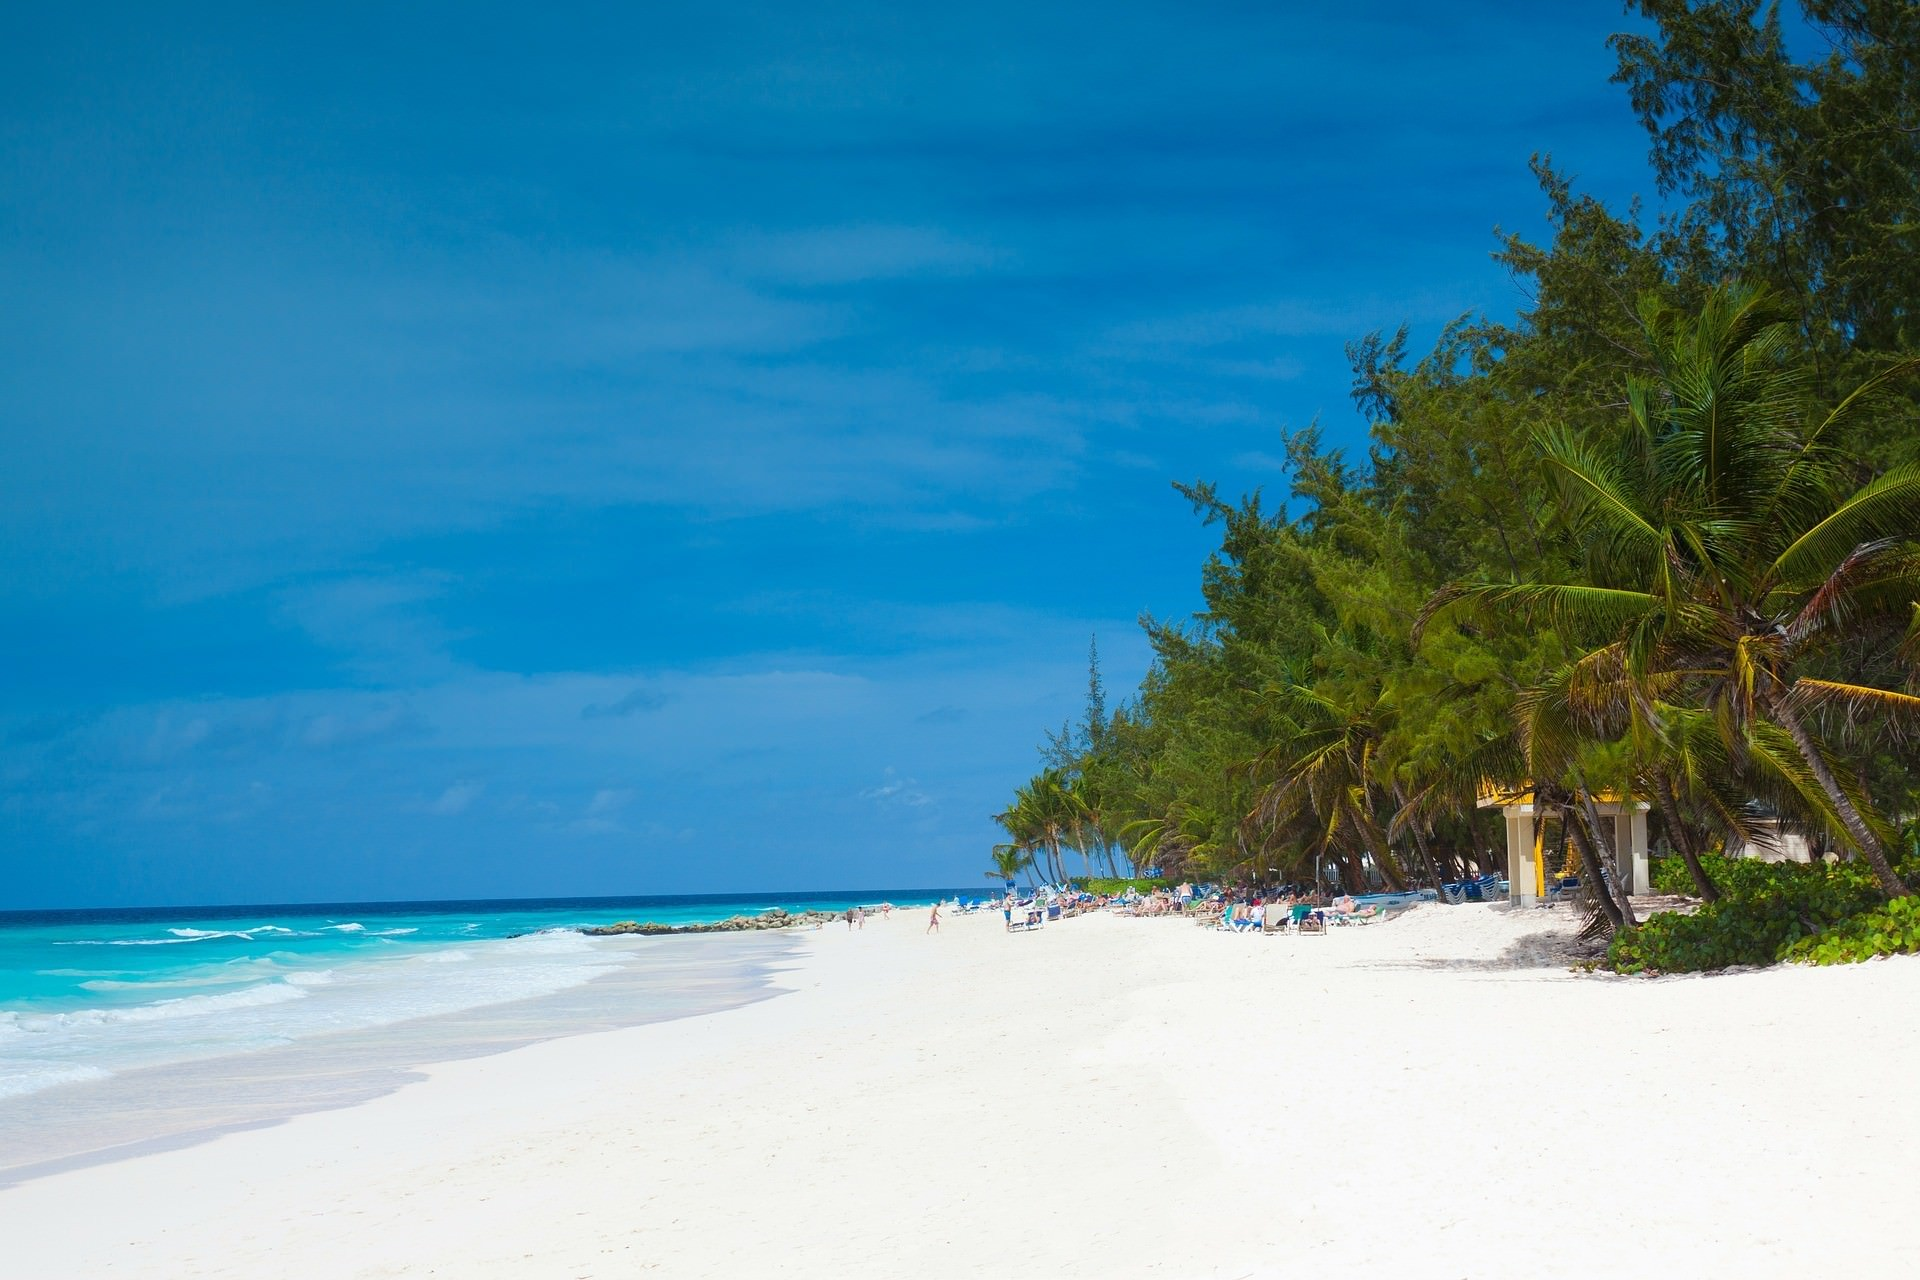 Exotic Beach in Barbados